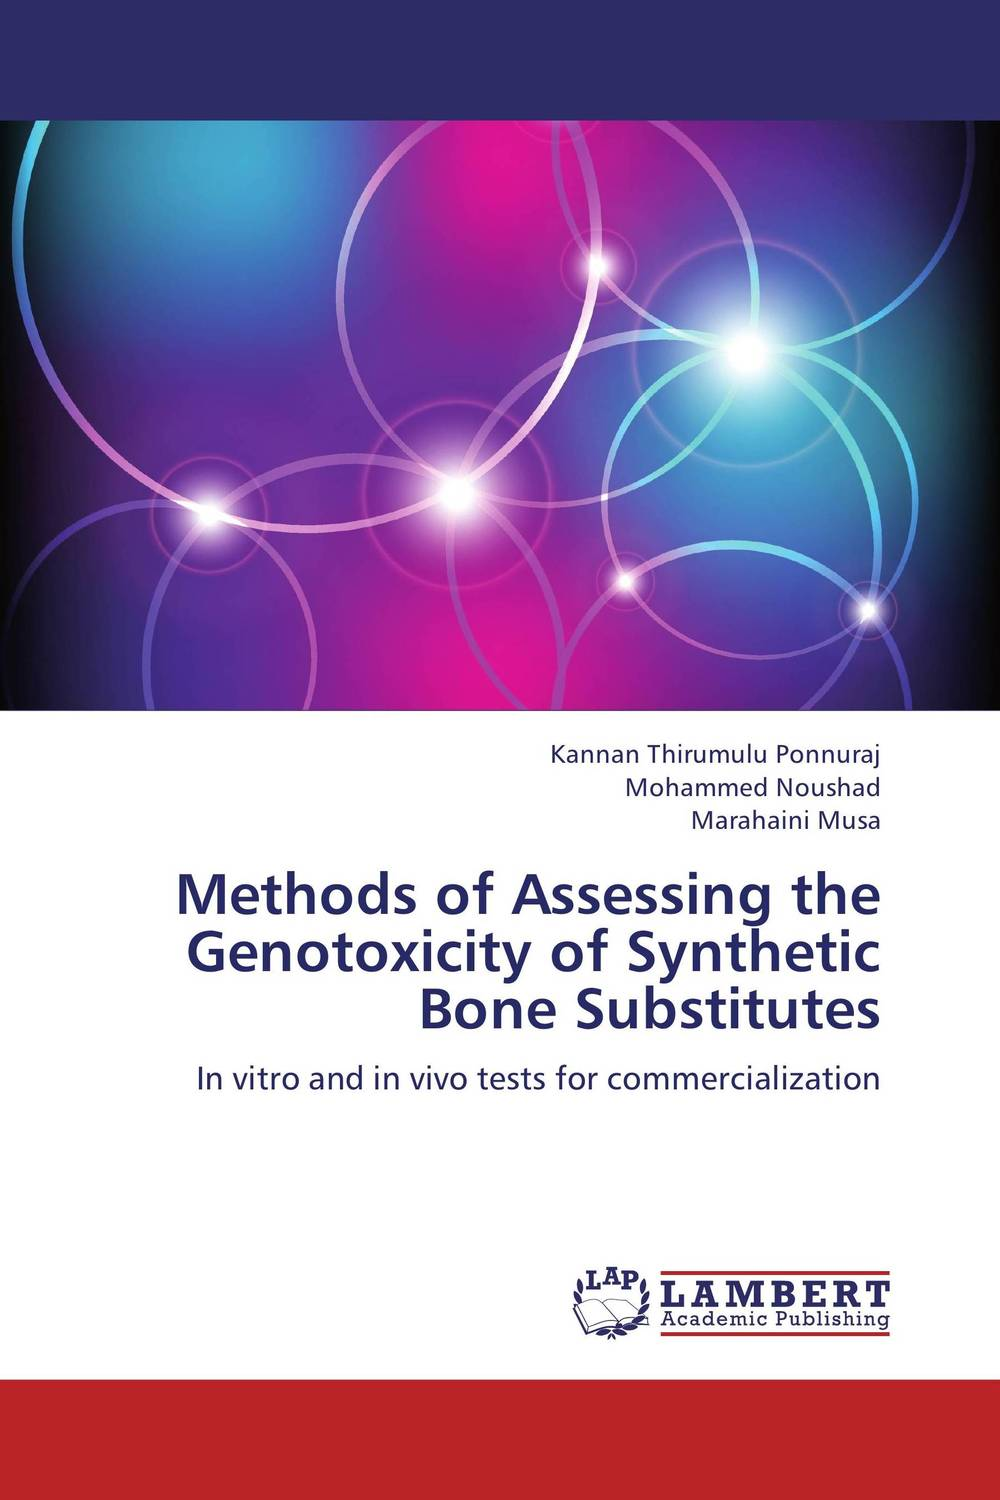 Methods of Assessing the Genotoxicity of Synthetic Bone Substitutes belousov a security features of banknotes and other documents methods of authentication manual денежные билеты бланки ценных бумаг и документов